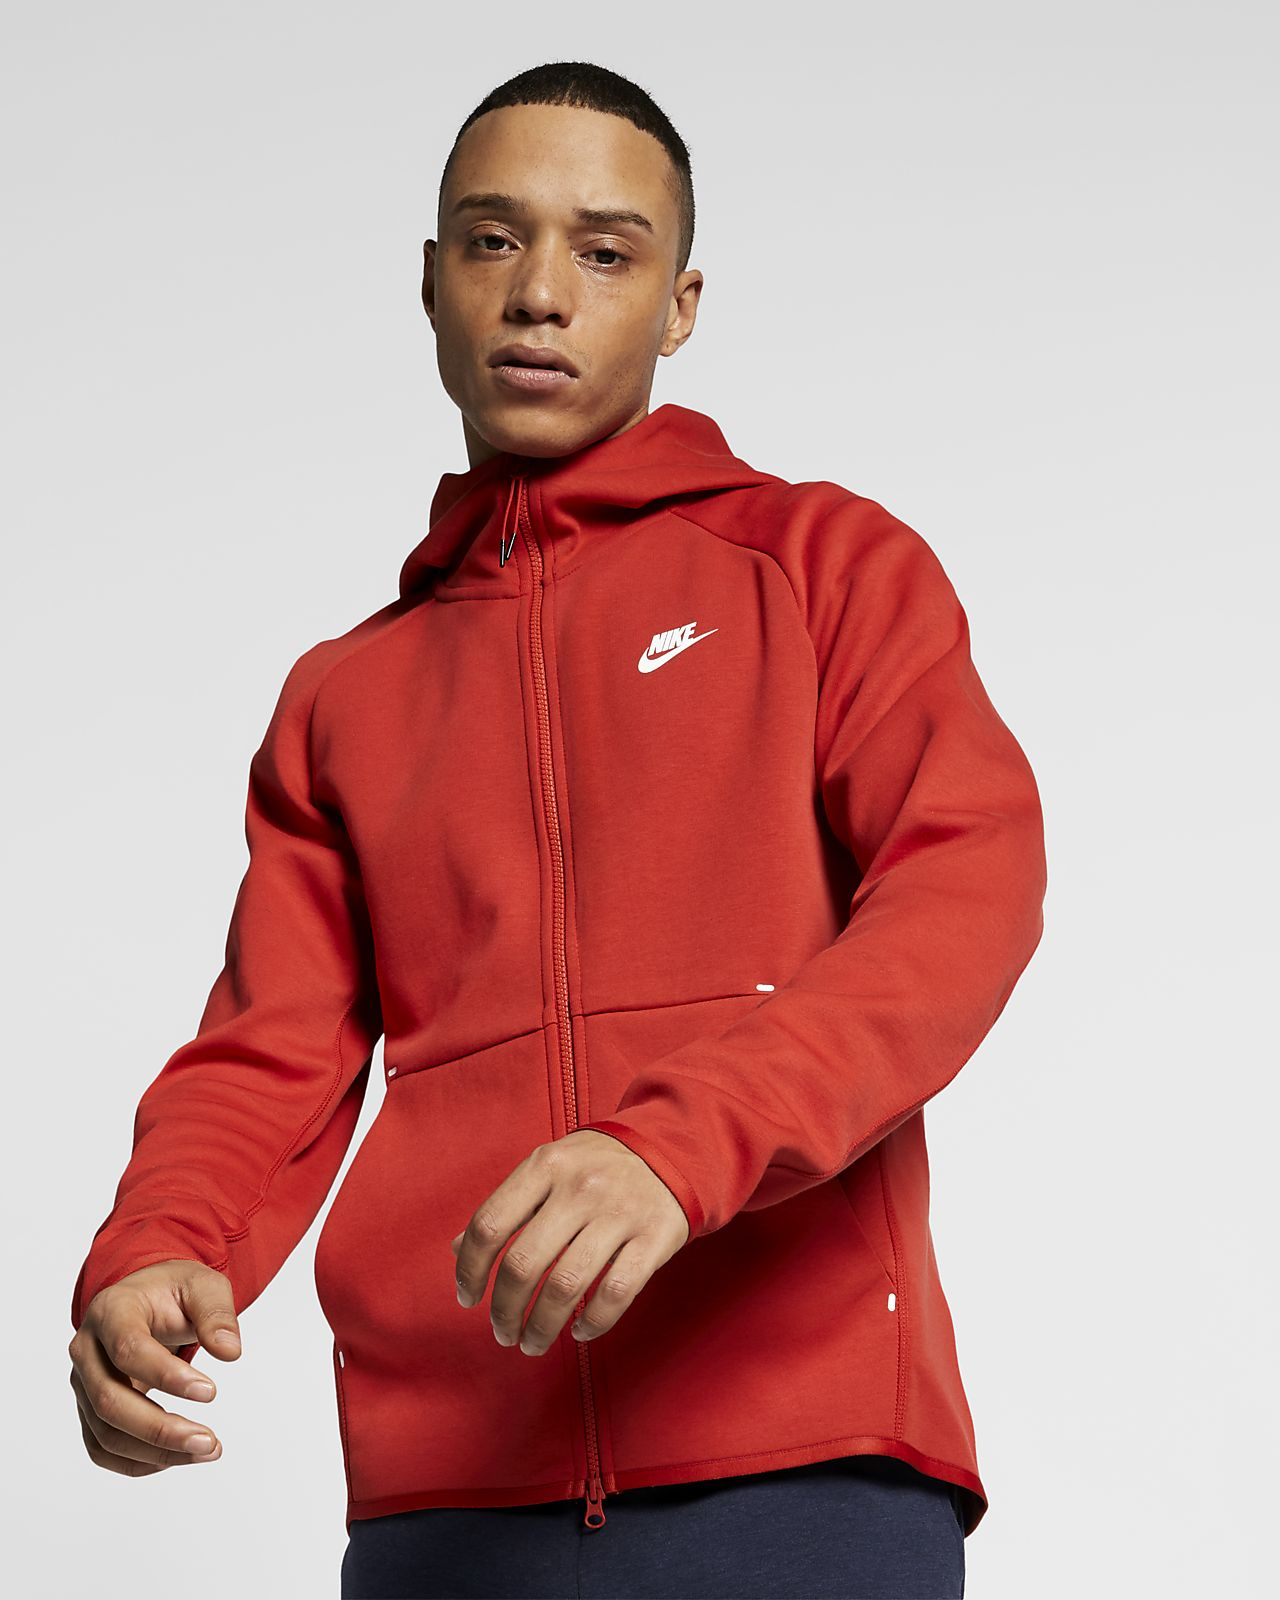 447b1ffd0768 Nike Sportswear Tech Fleece Men s Full-Zip Hoodie. Nike.com